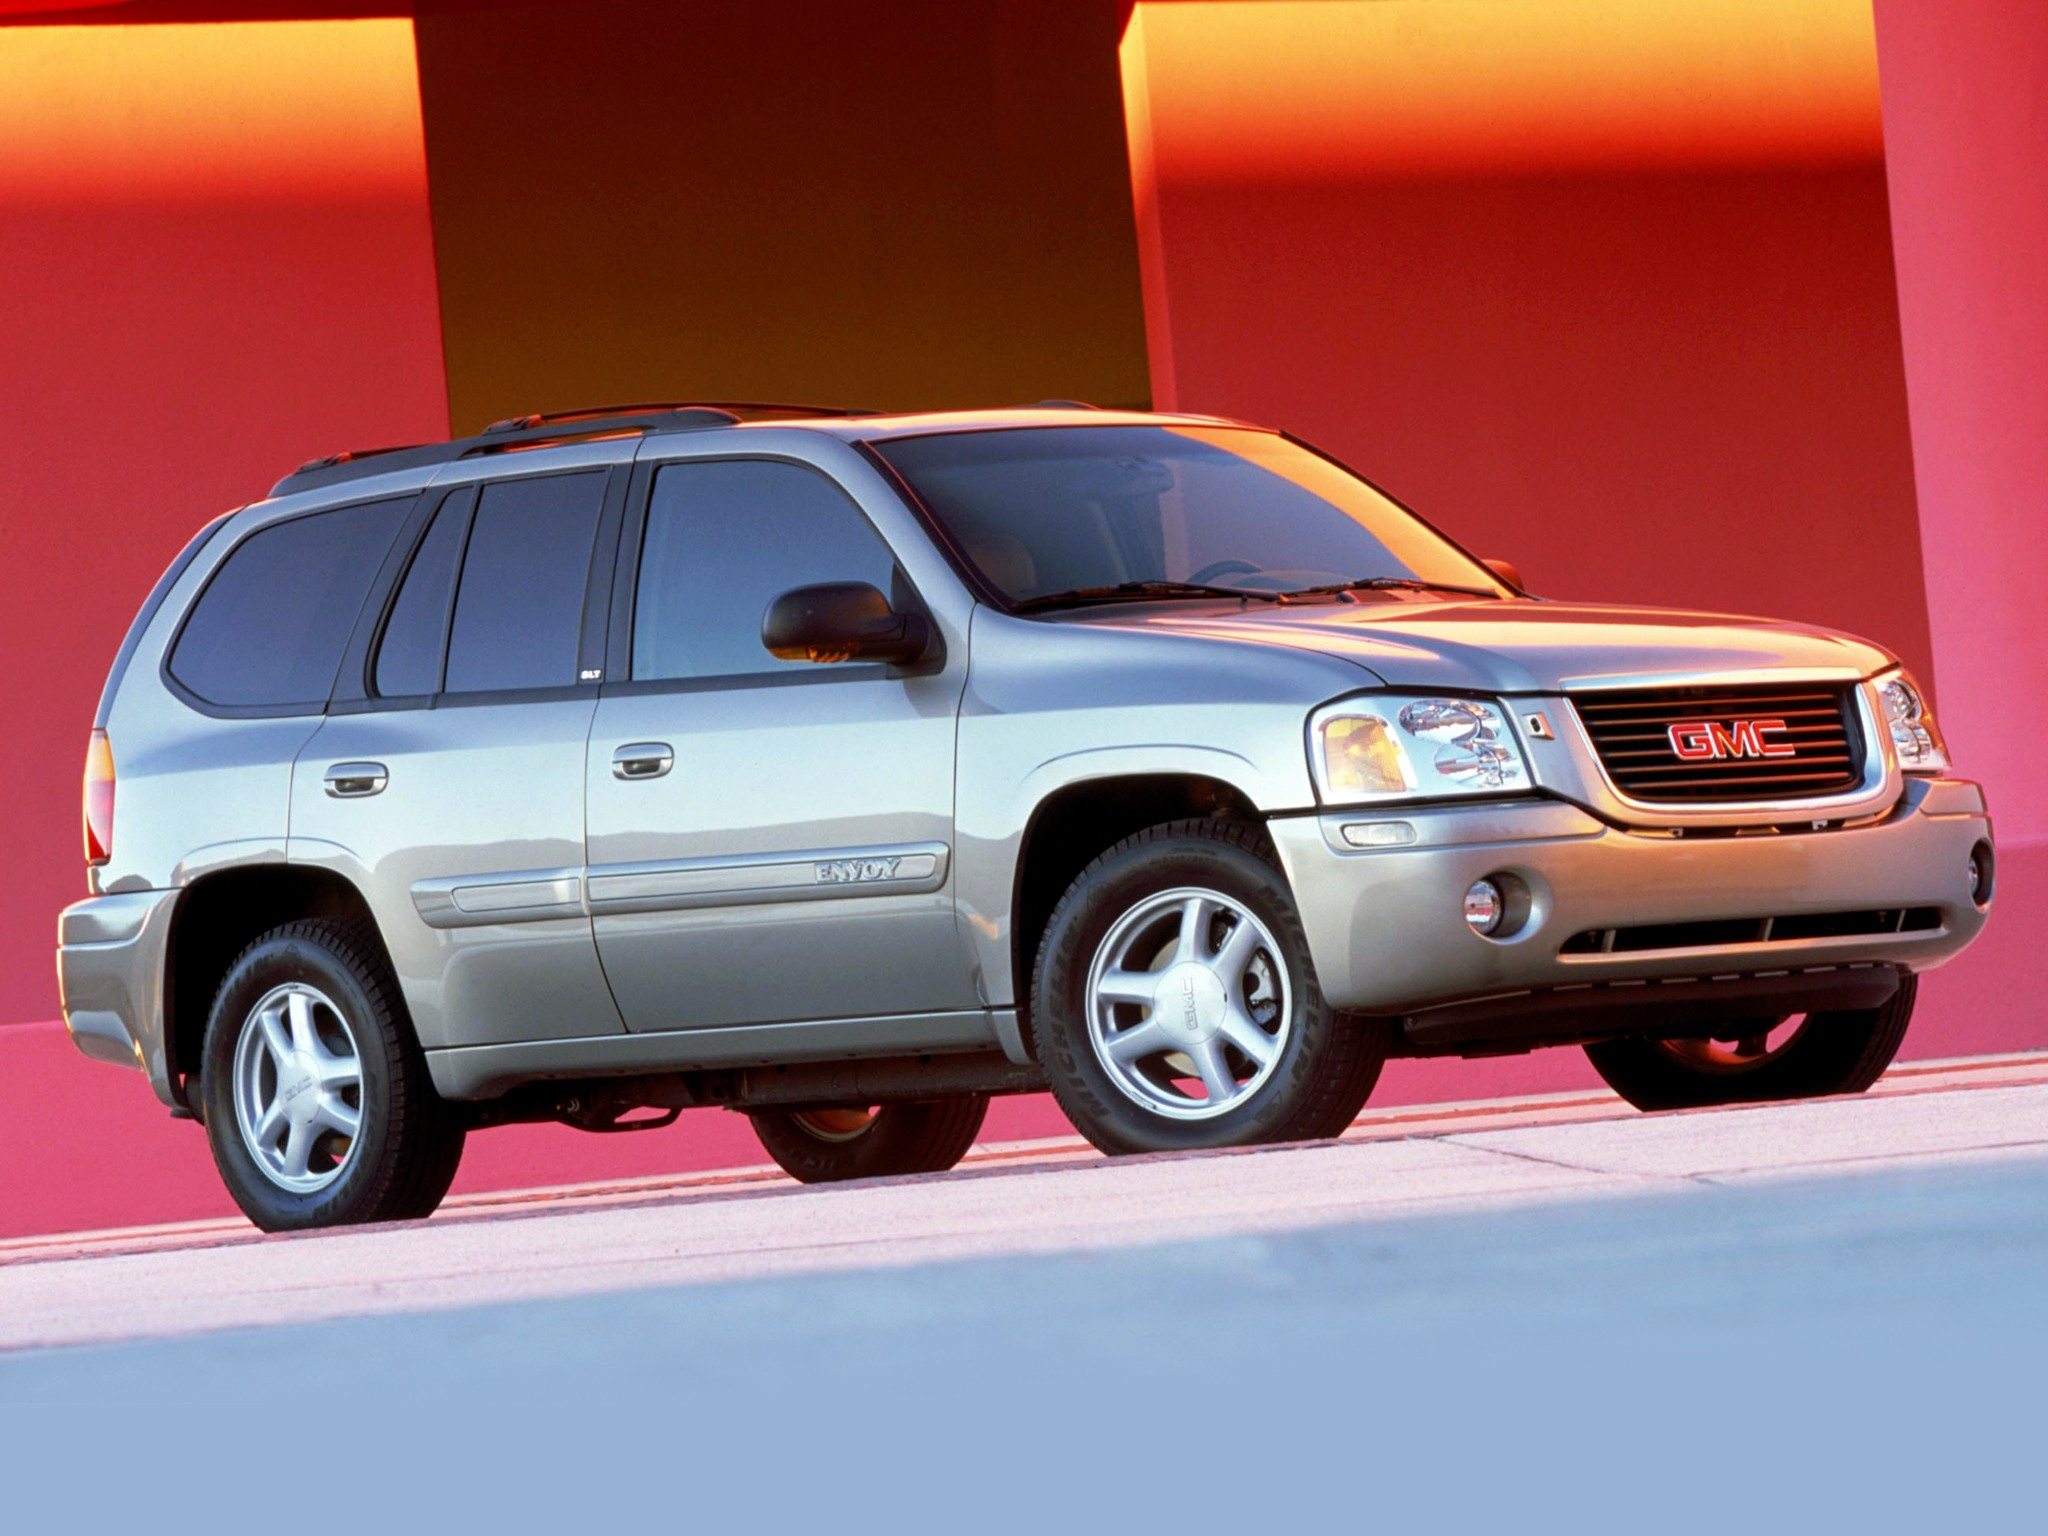 Lexus Gx Front Wallpapers together with Toyota Runner in addition Gmc Envoy also  together with Gmc Envoy. on toyota 4runner v8 engine